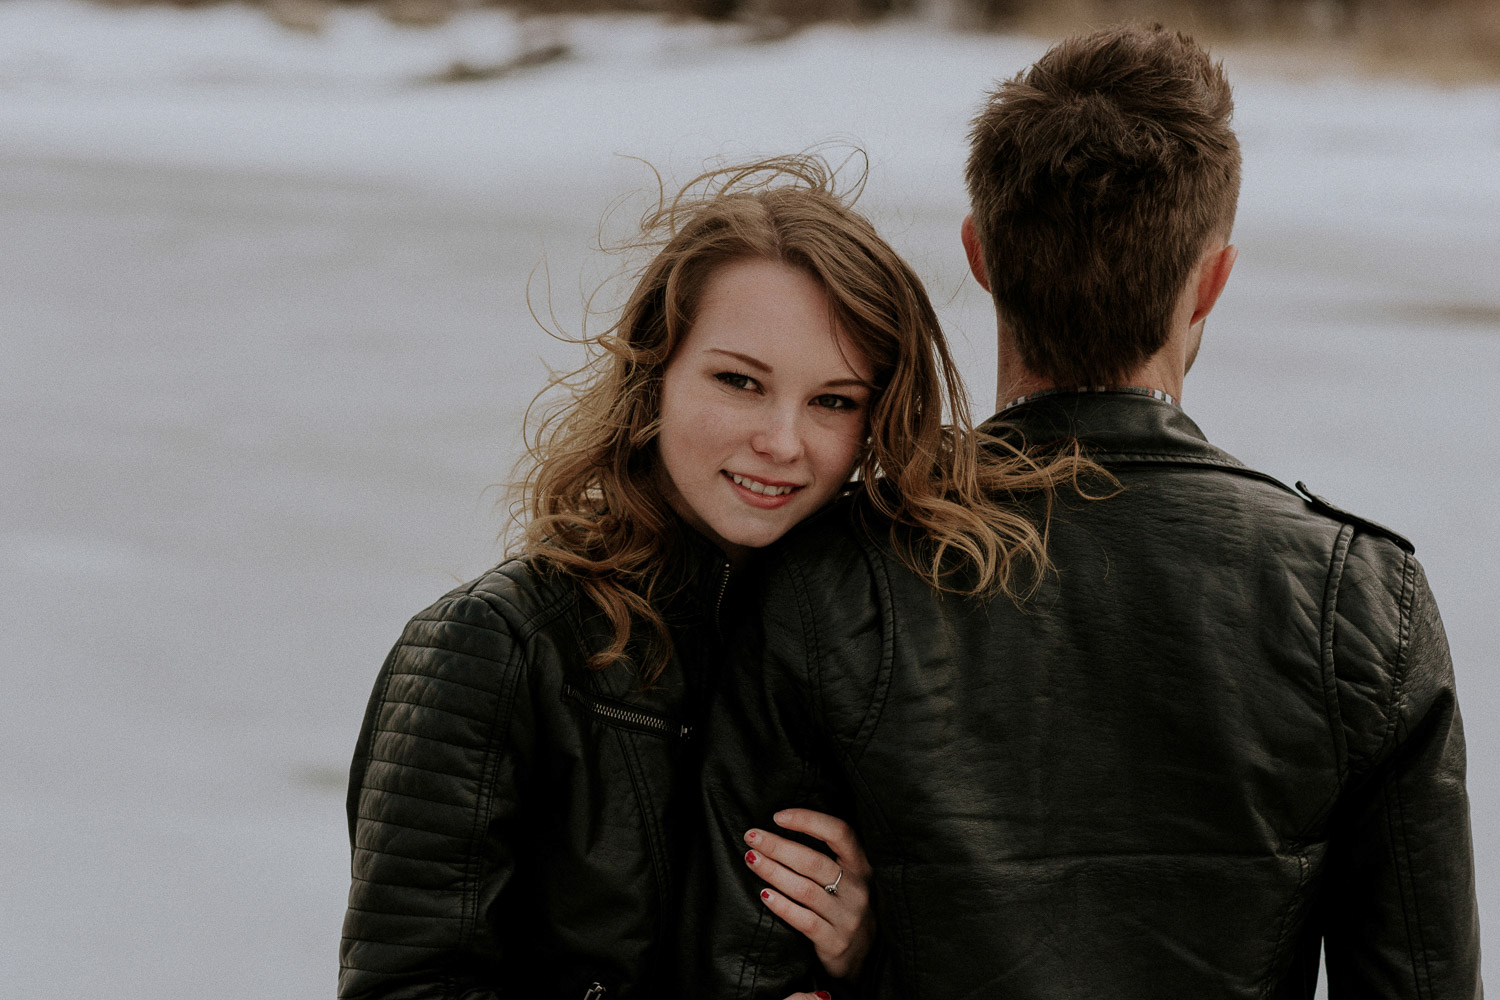 Image of girl holds guy's one arm